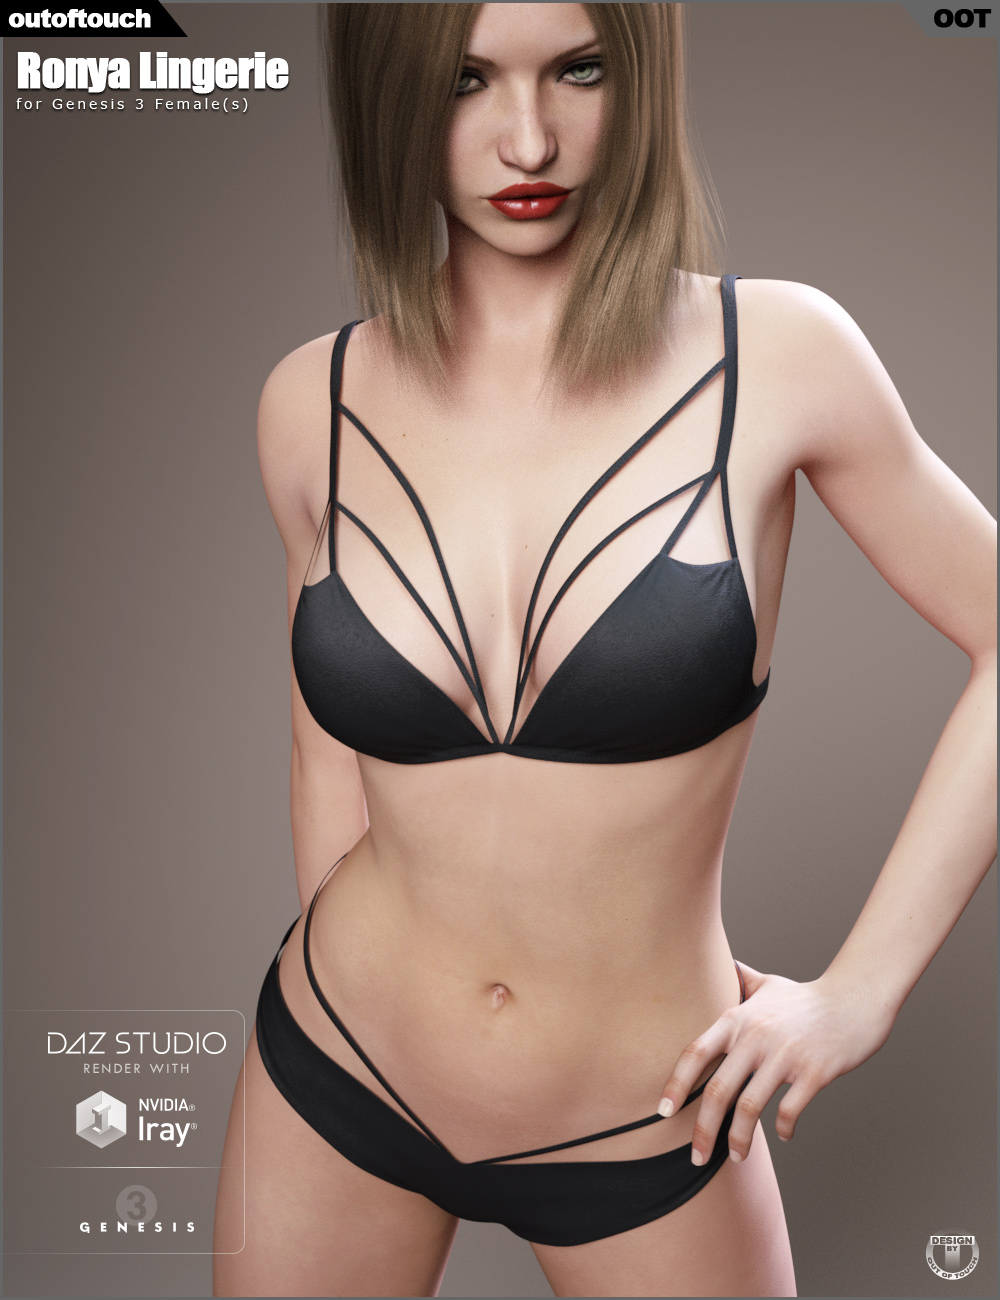 Ronya Lingerie for Genesis 3 Female(s) by: outoftouch, 3D Models by Daz 3D